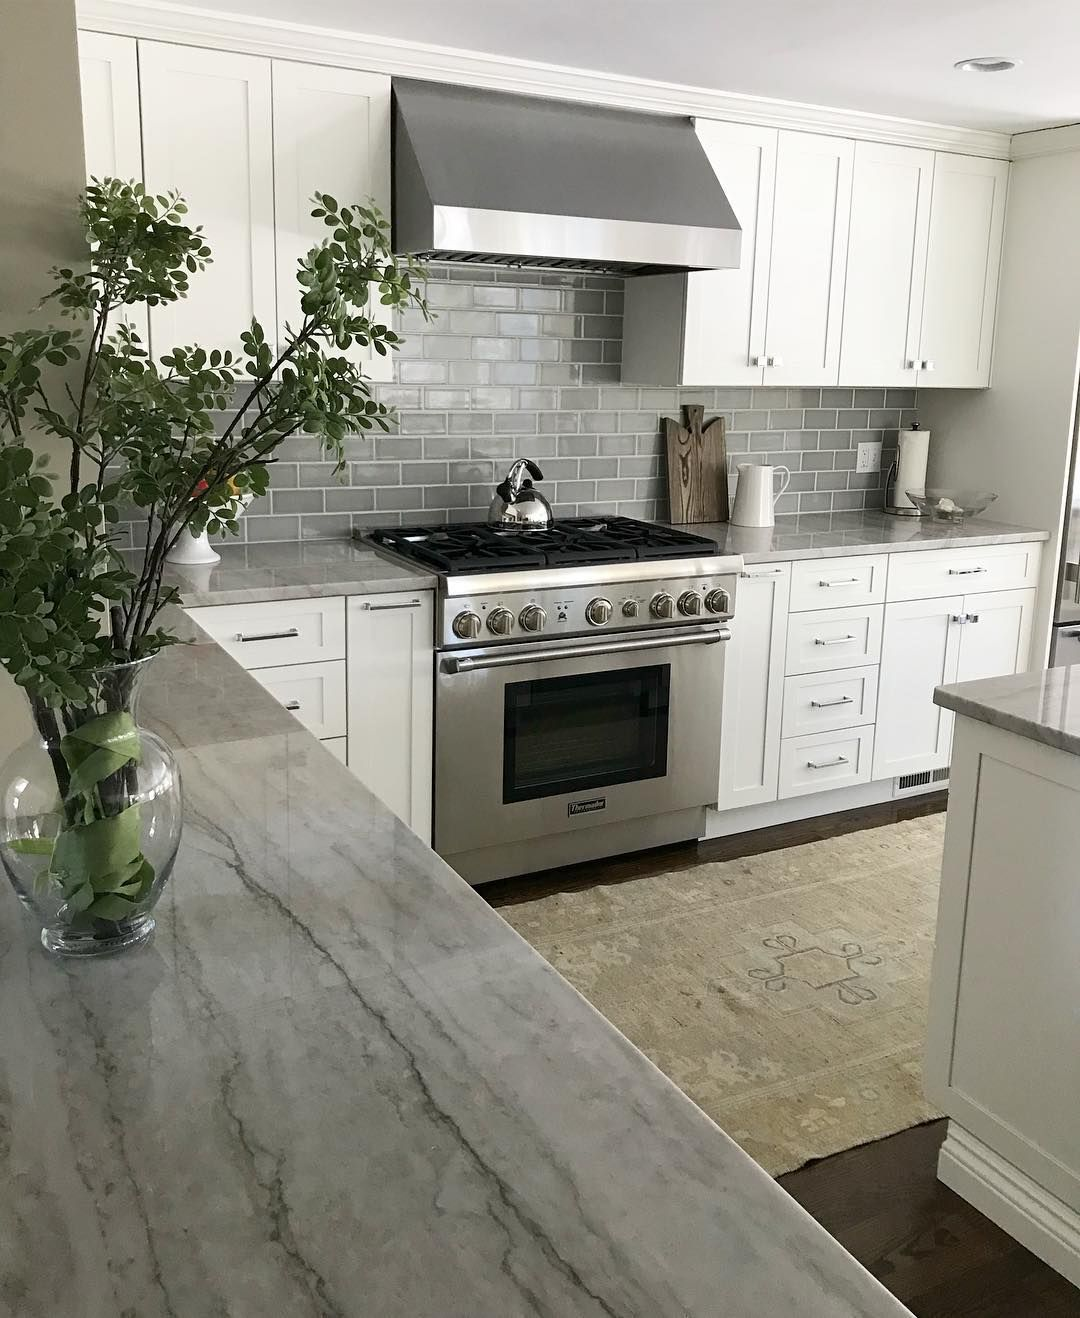 erin gates on instagram a simple classic kitchen renovation that won t ever look dated on t kitchen ideas id=26220